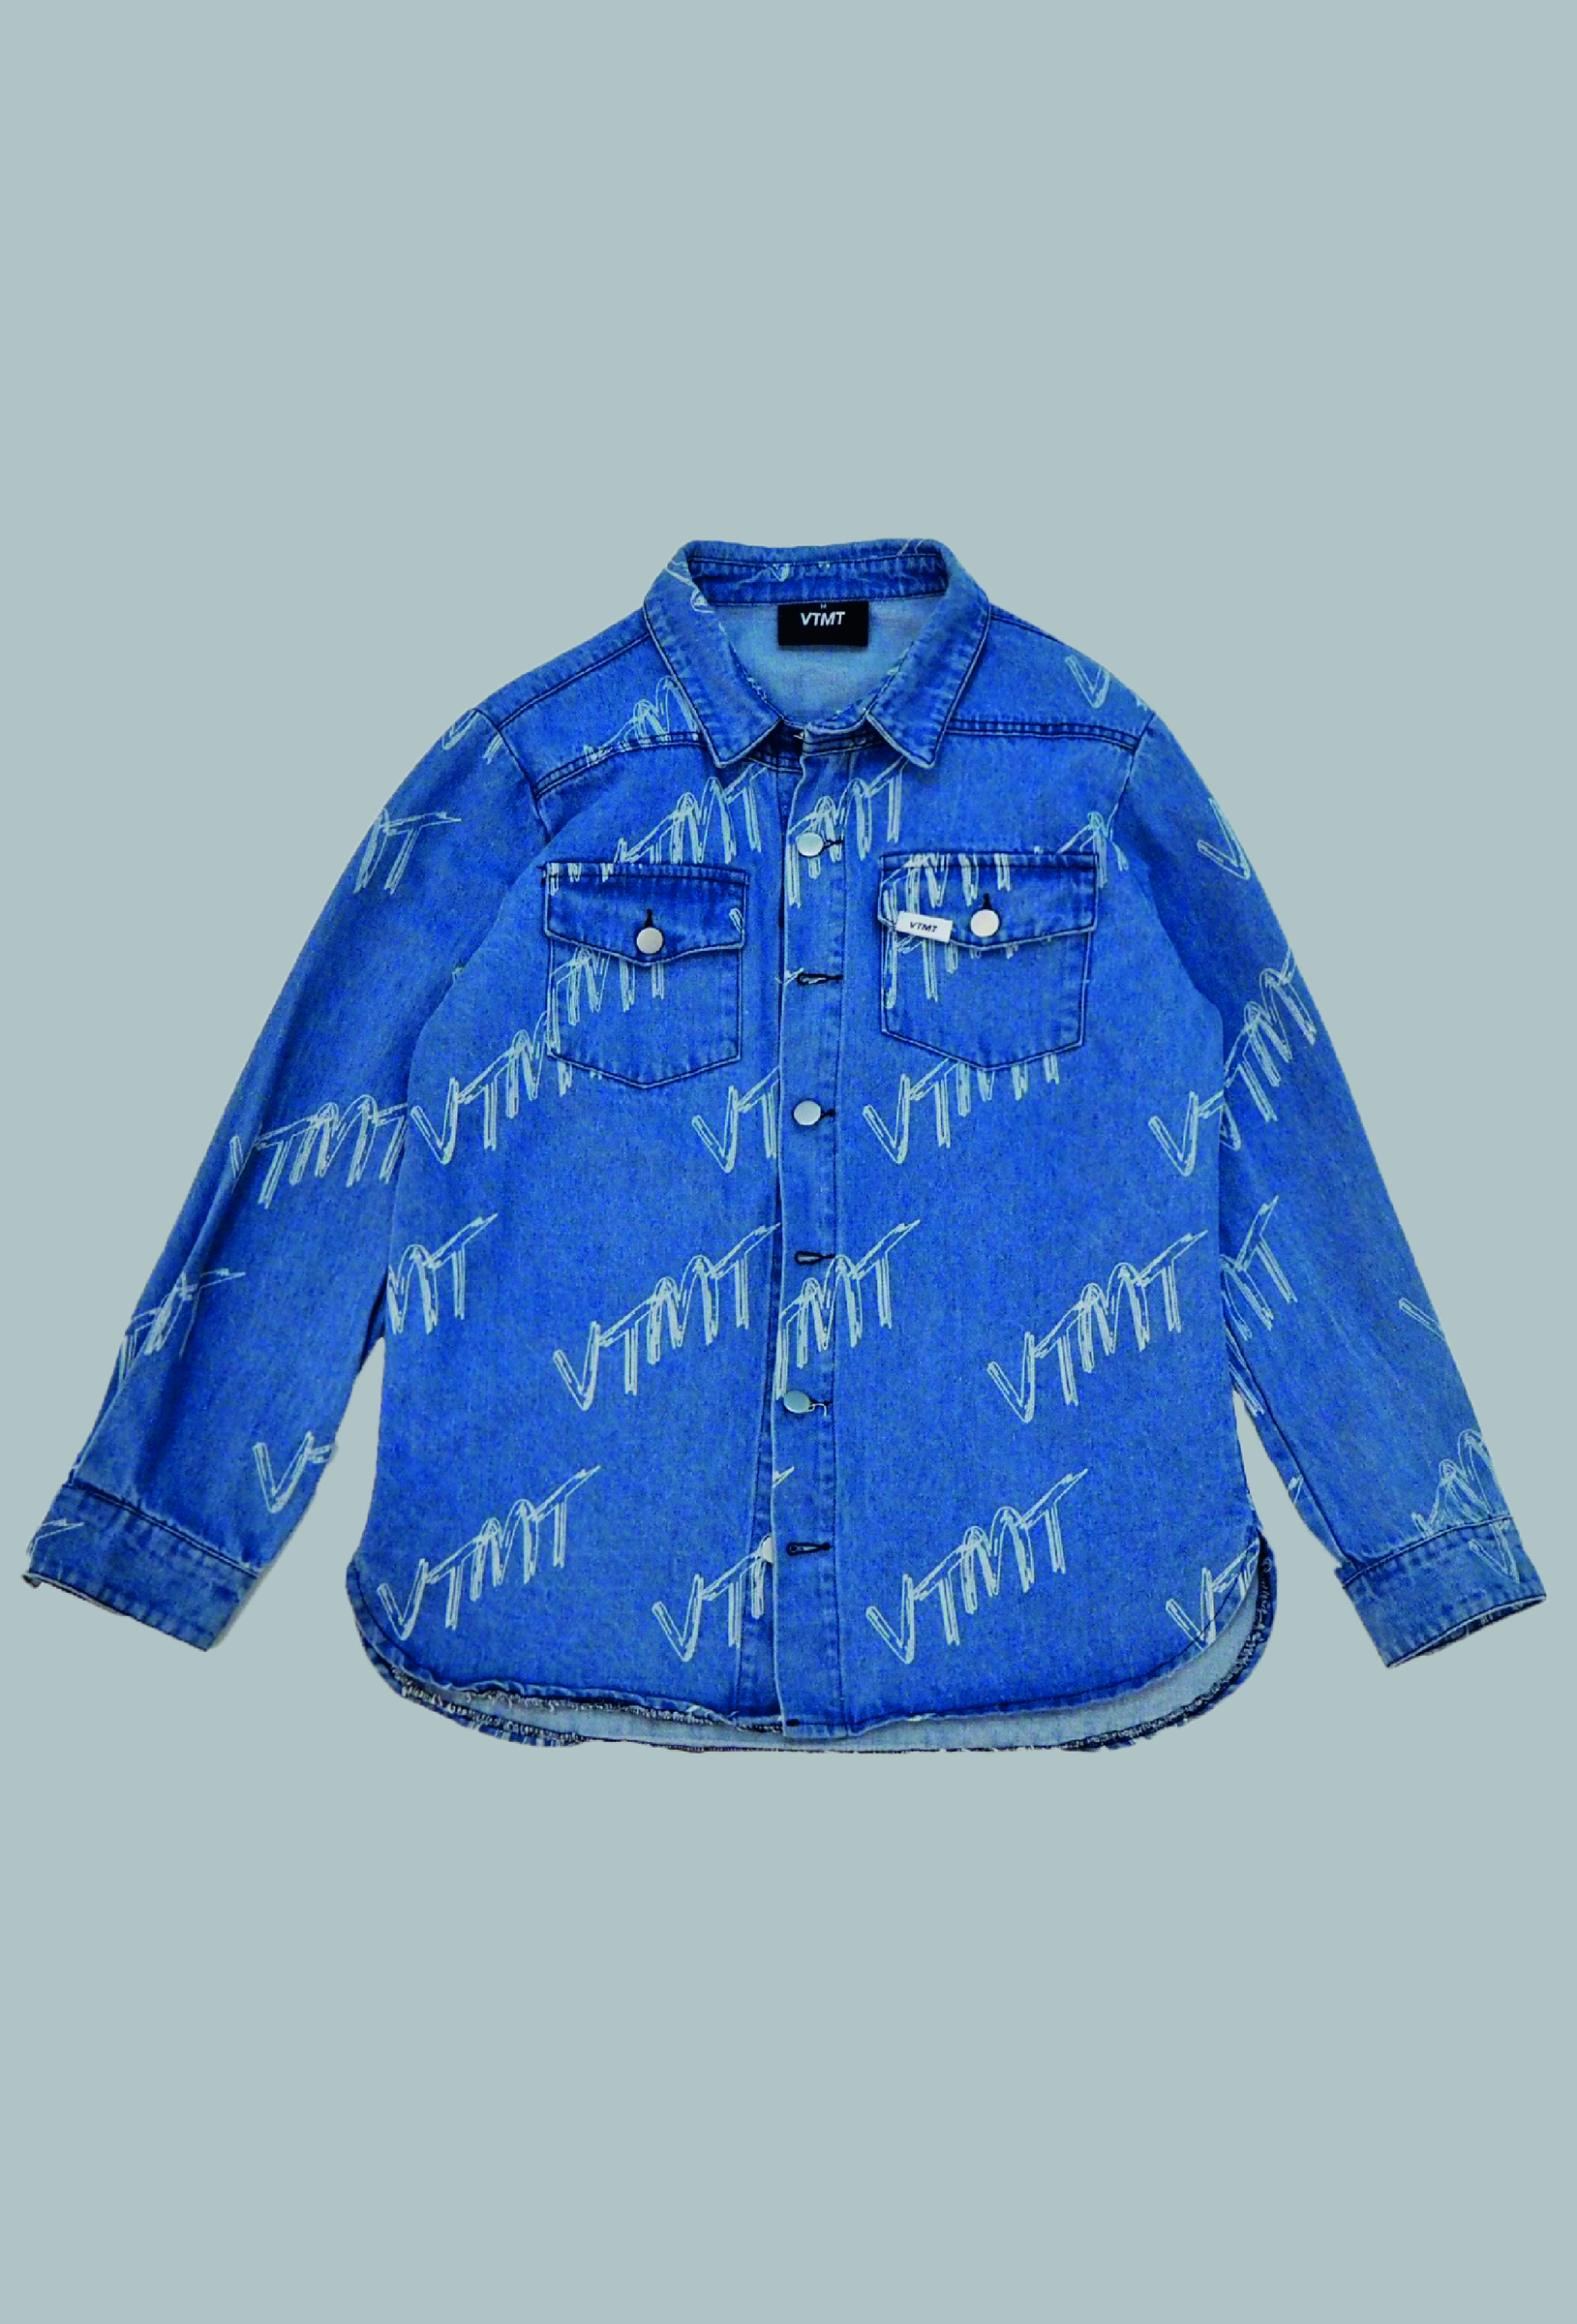 denim jacket -01.jpg